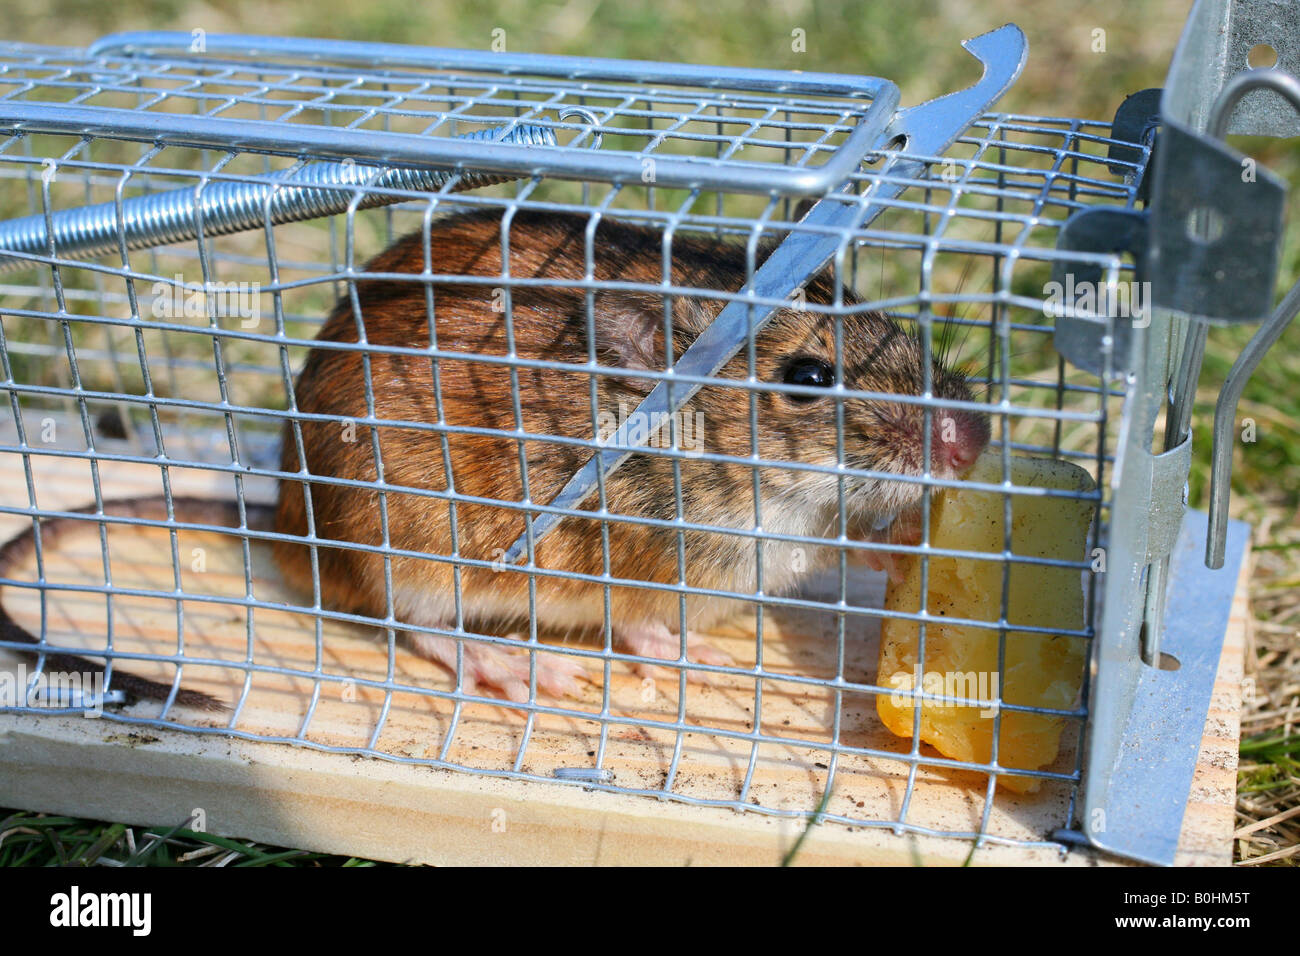 Mouse caught in a live-catching mousetrap Stock Photo